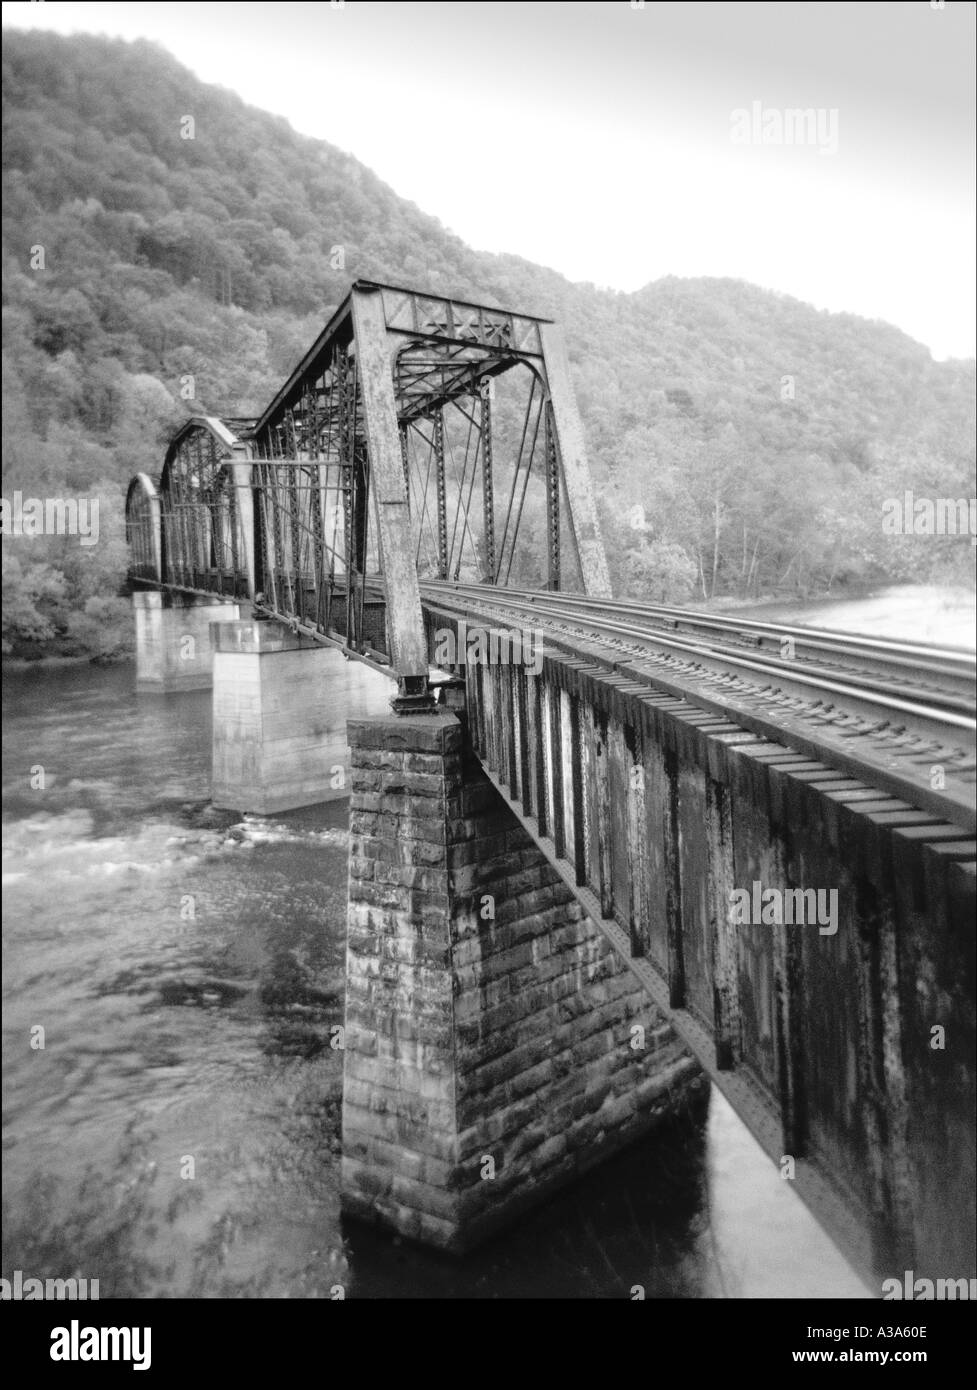 Railroad bridge over the new river in west virginia black and white